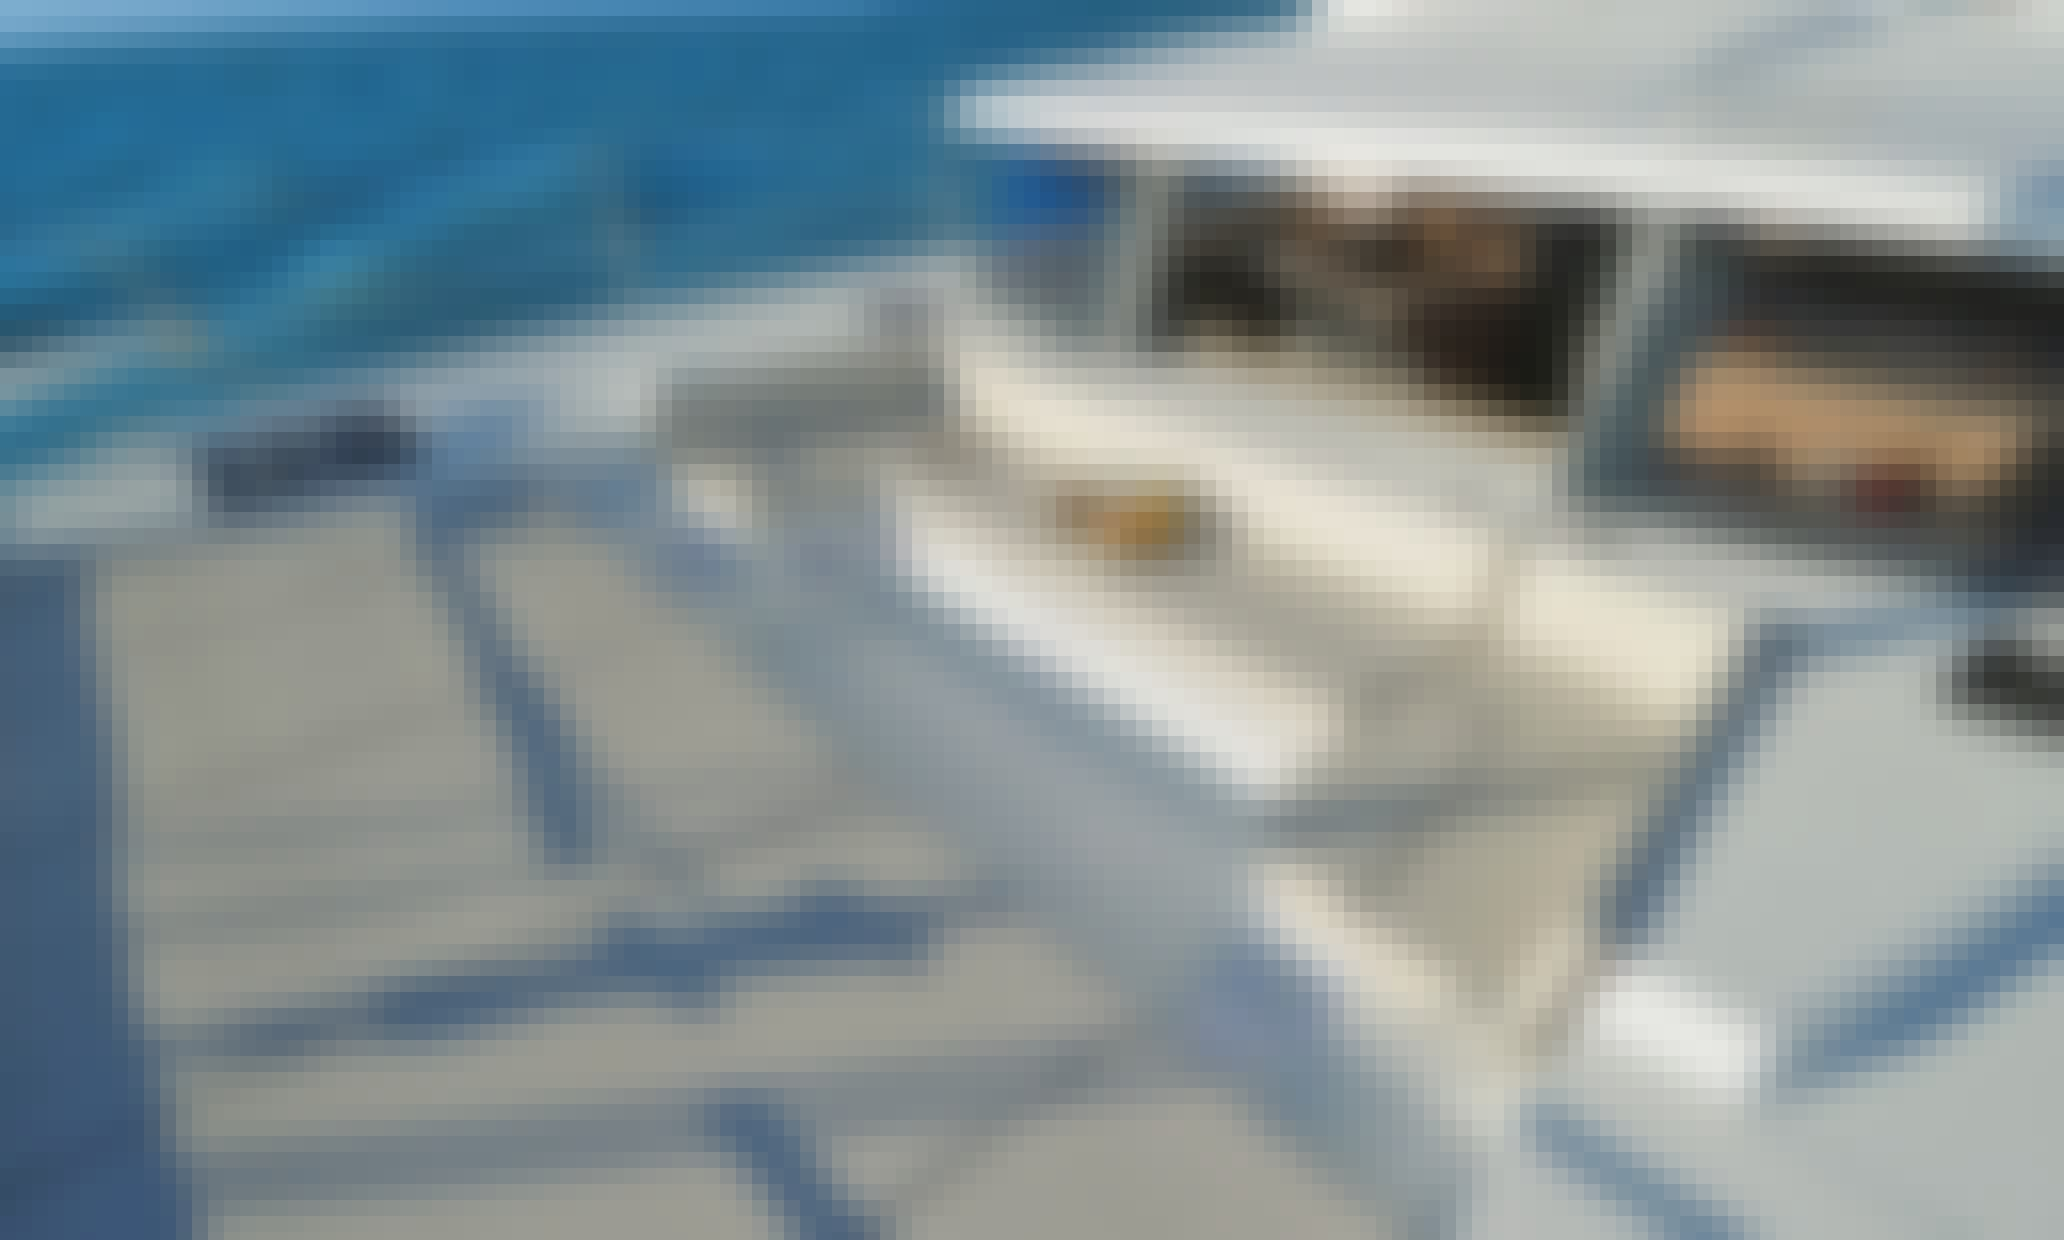 Bali 4.1 Bareboat Charter for Up 10 Guests in Kos, Greece